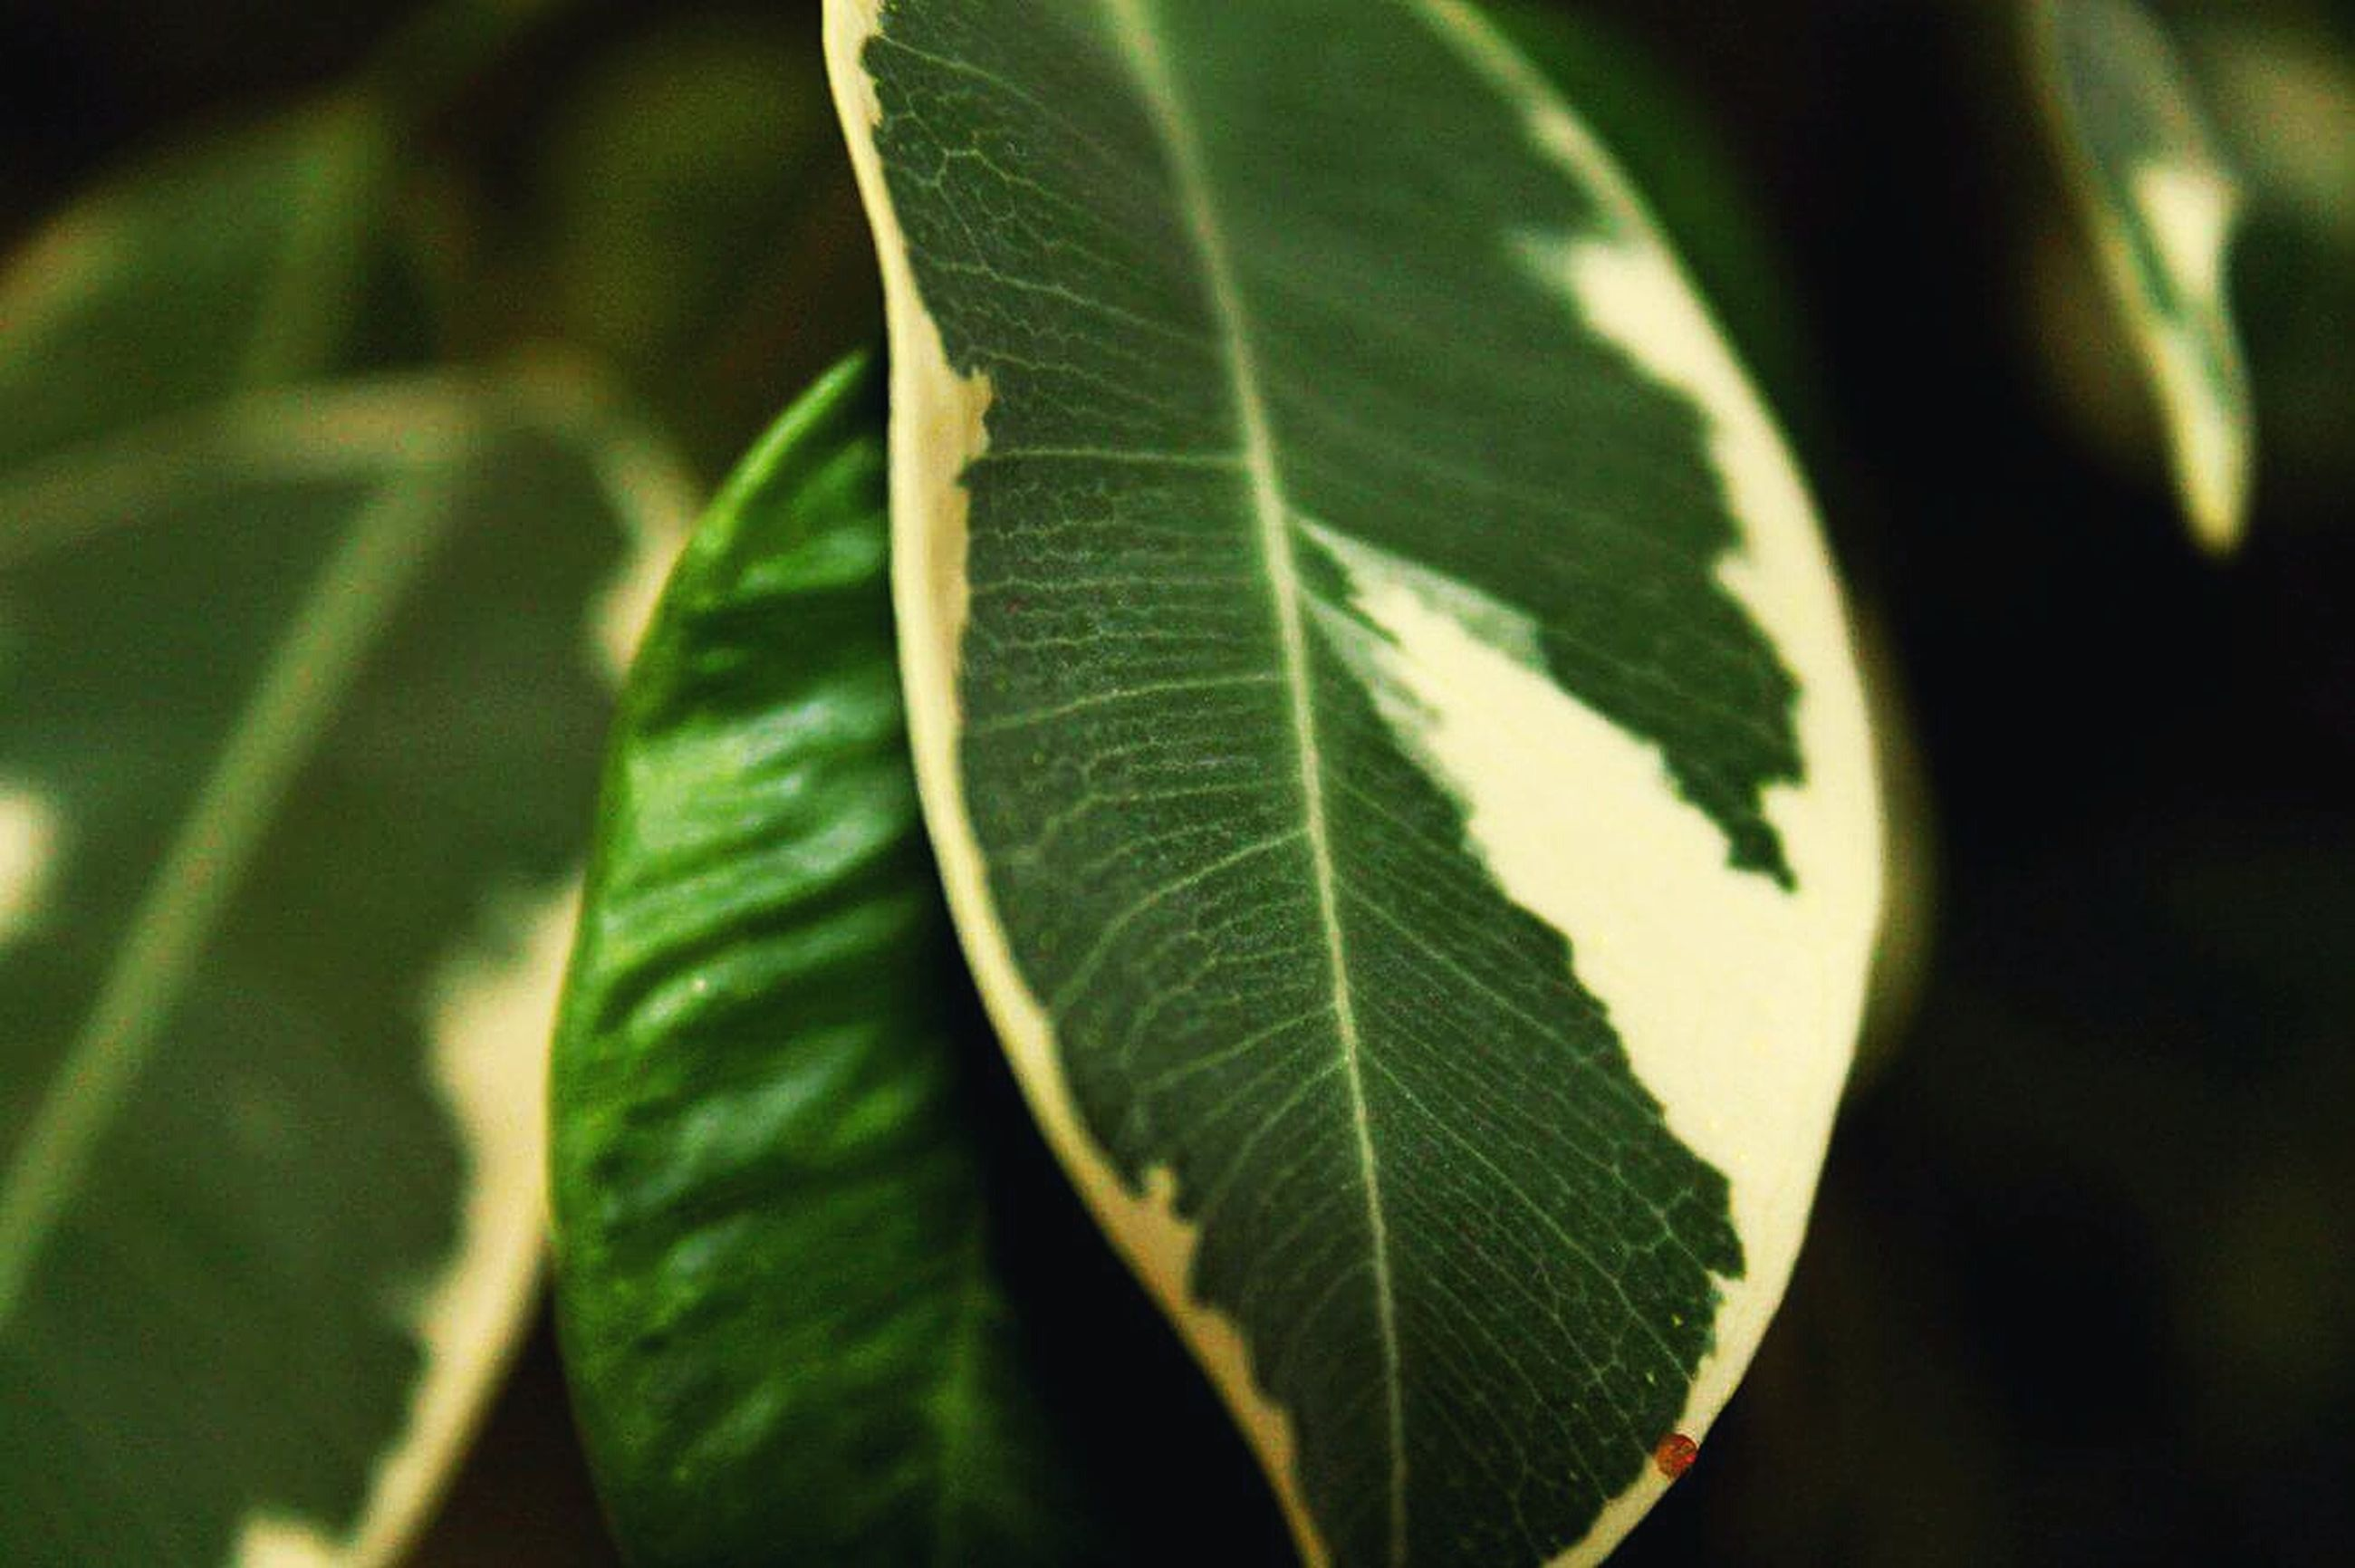 leaf, green color, close-up, leaf vein, growth, focus on foreground, plant, nature, beauty in nature, selective focus, natural pattern, leaves, green, outdoors, no people, day, freshness, tranquility, stem, fragility